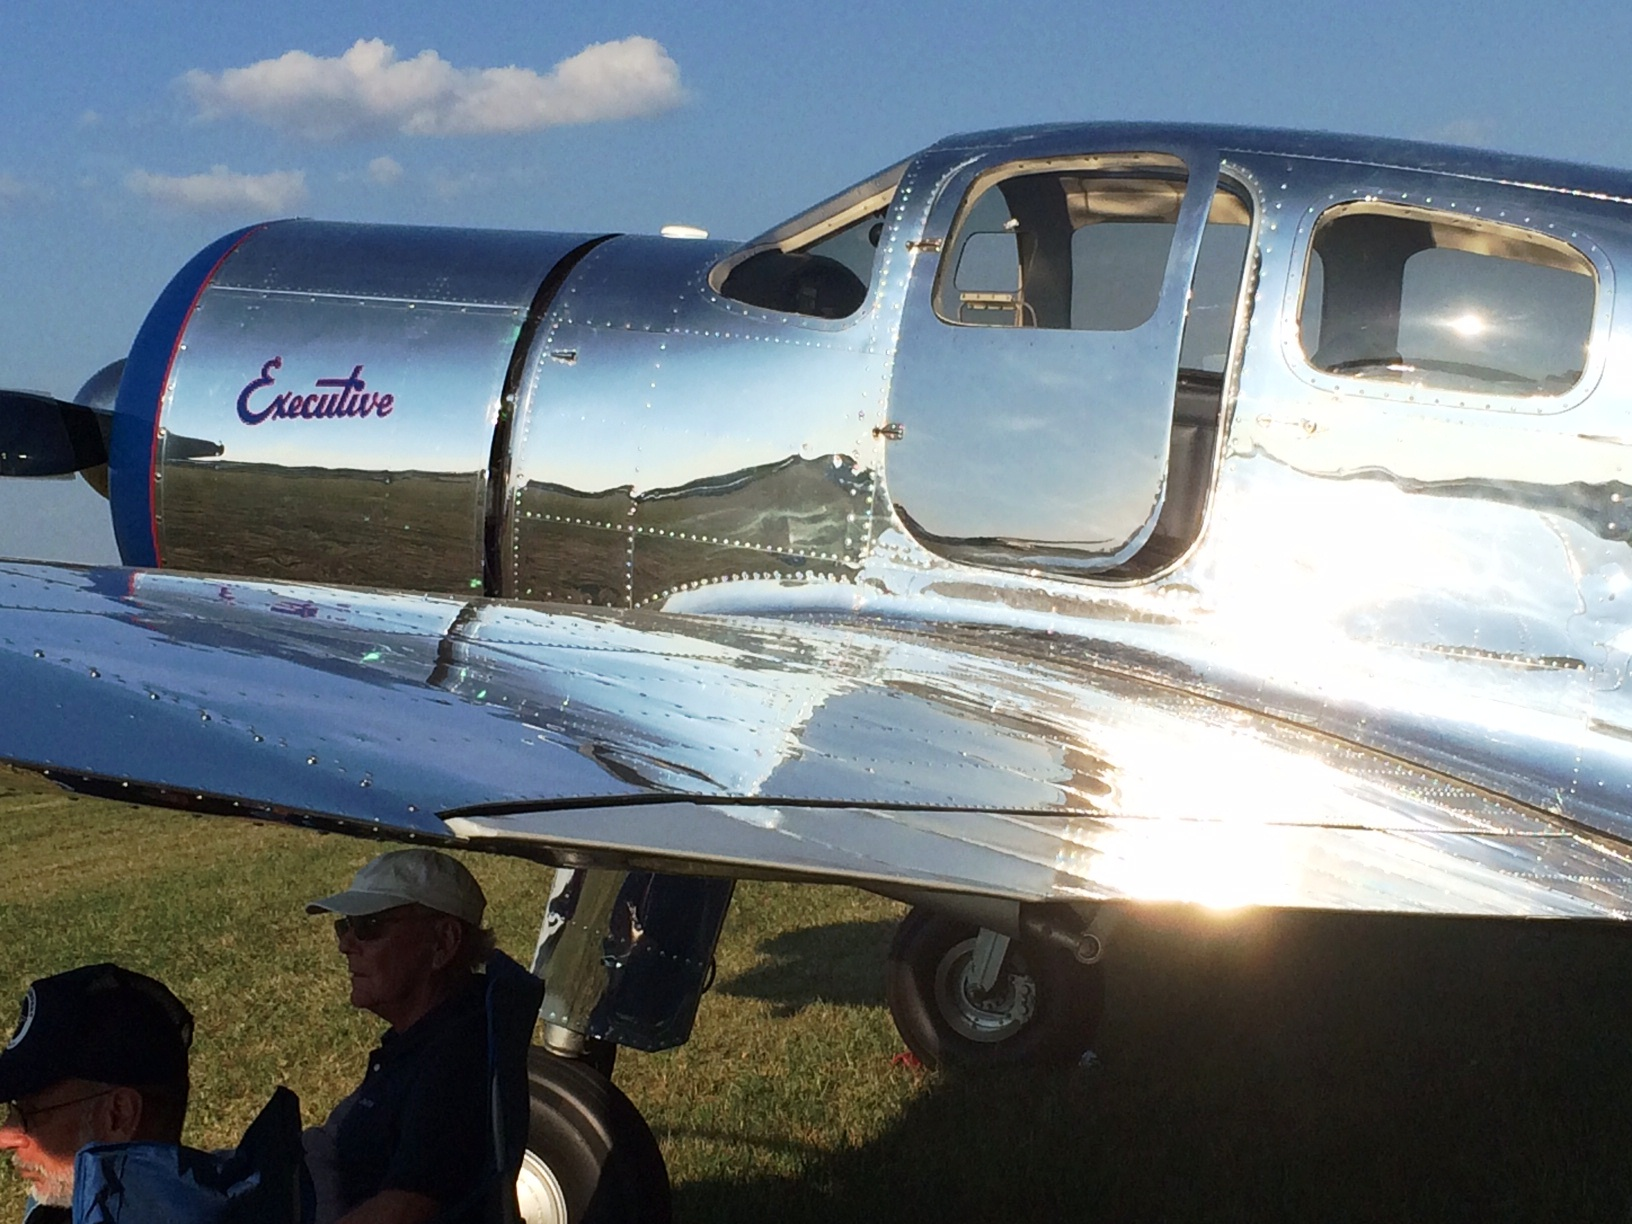 A Spartan Executive gleams in the sun at the Antique Airplane Association fly-in at Blakesburg, Iowa.